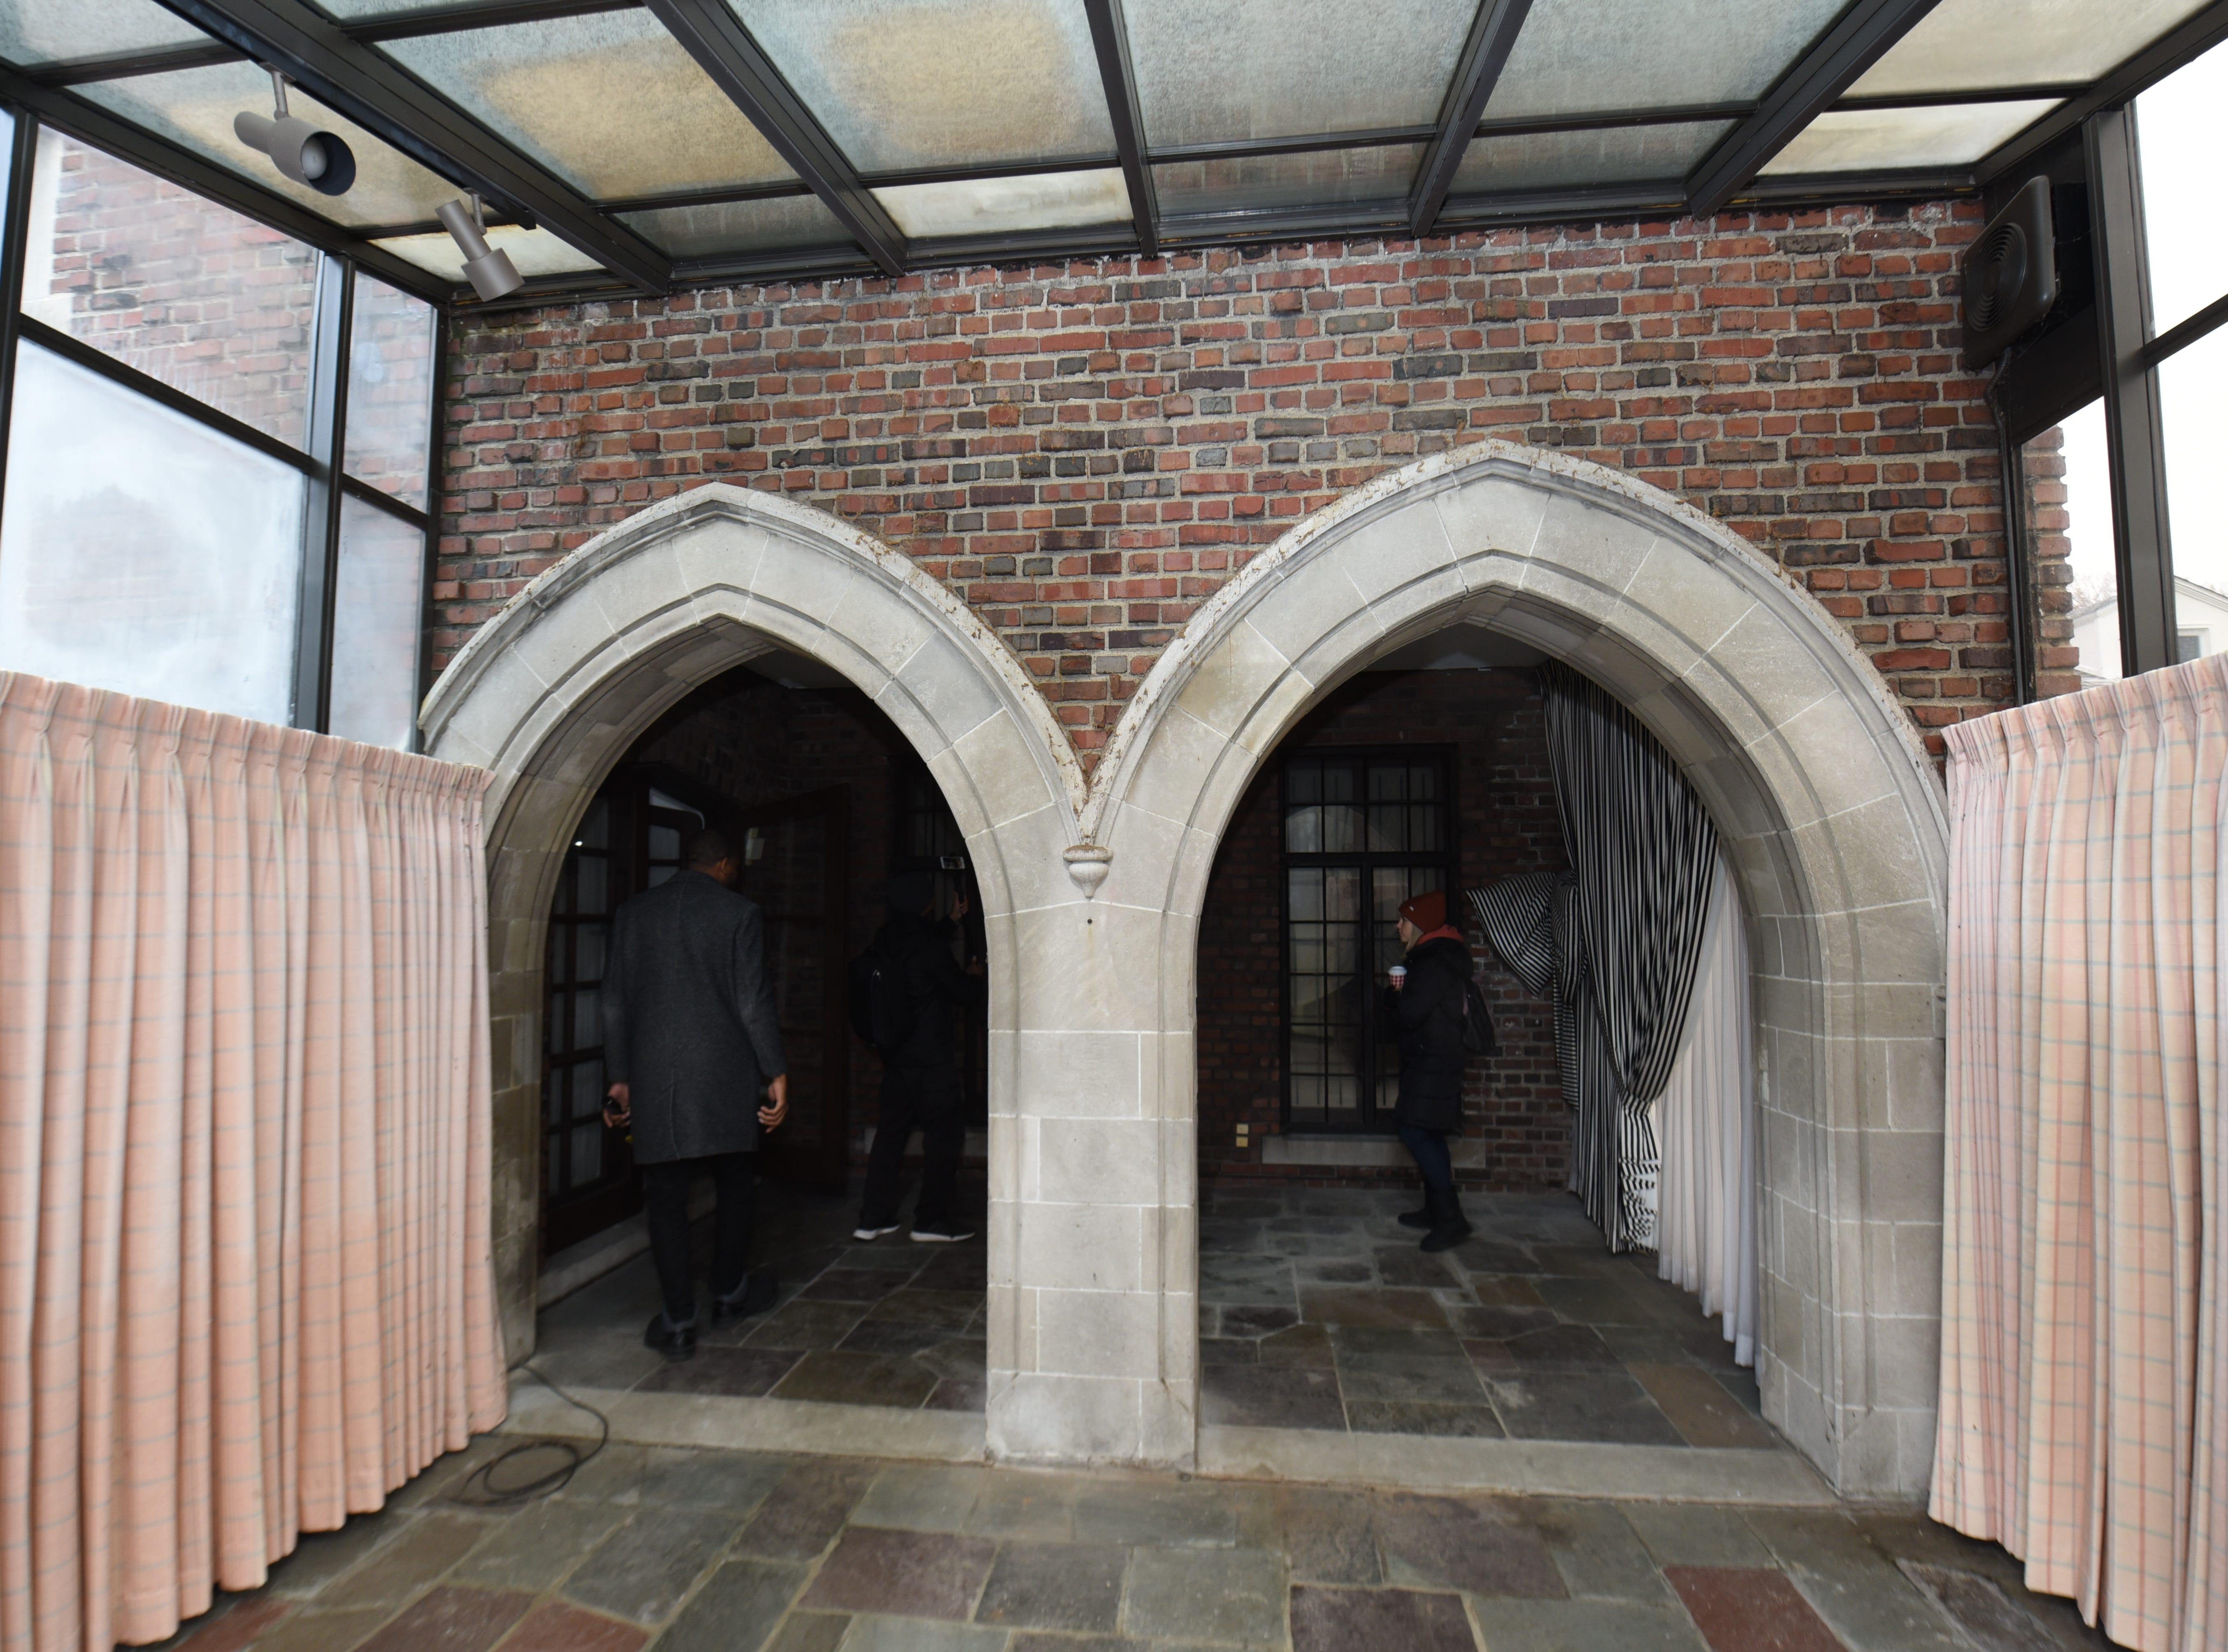 Double arches lead the way to one entrance of the home.